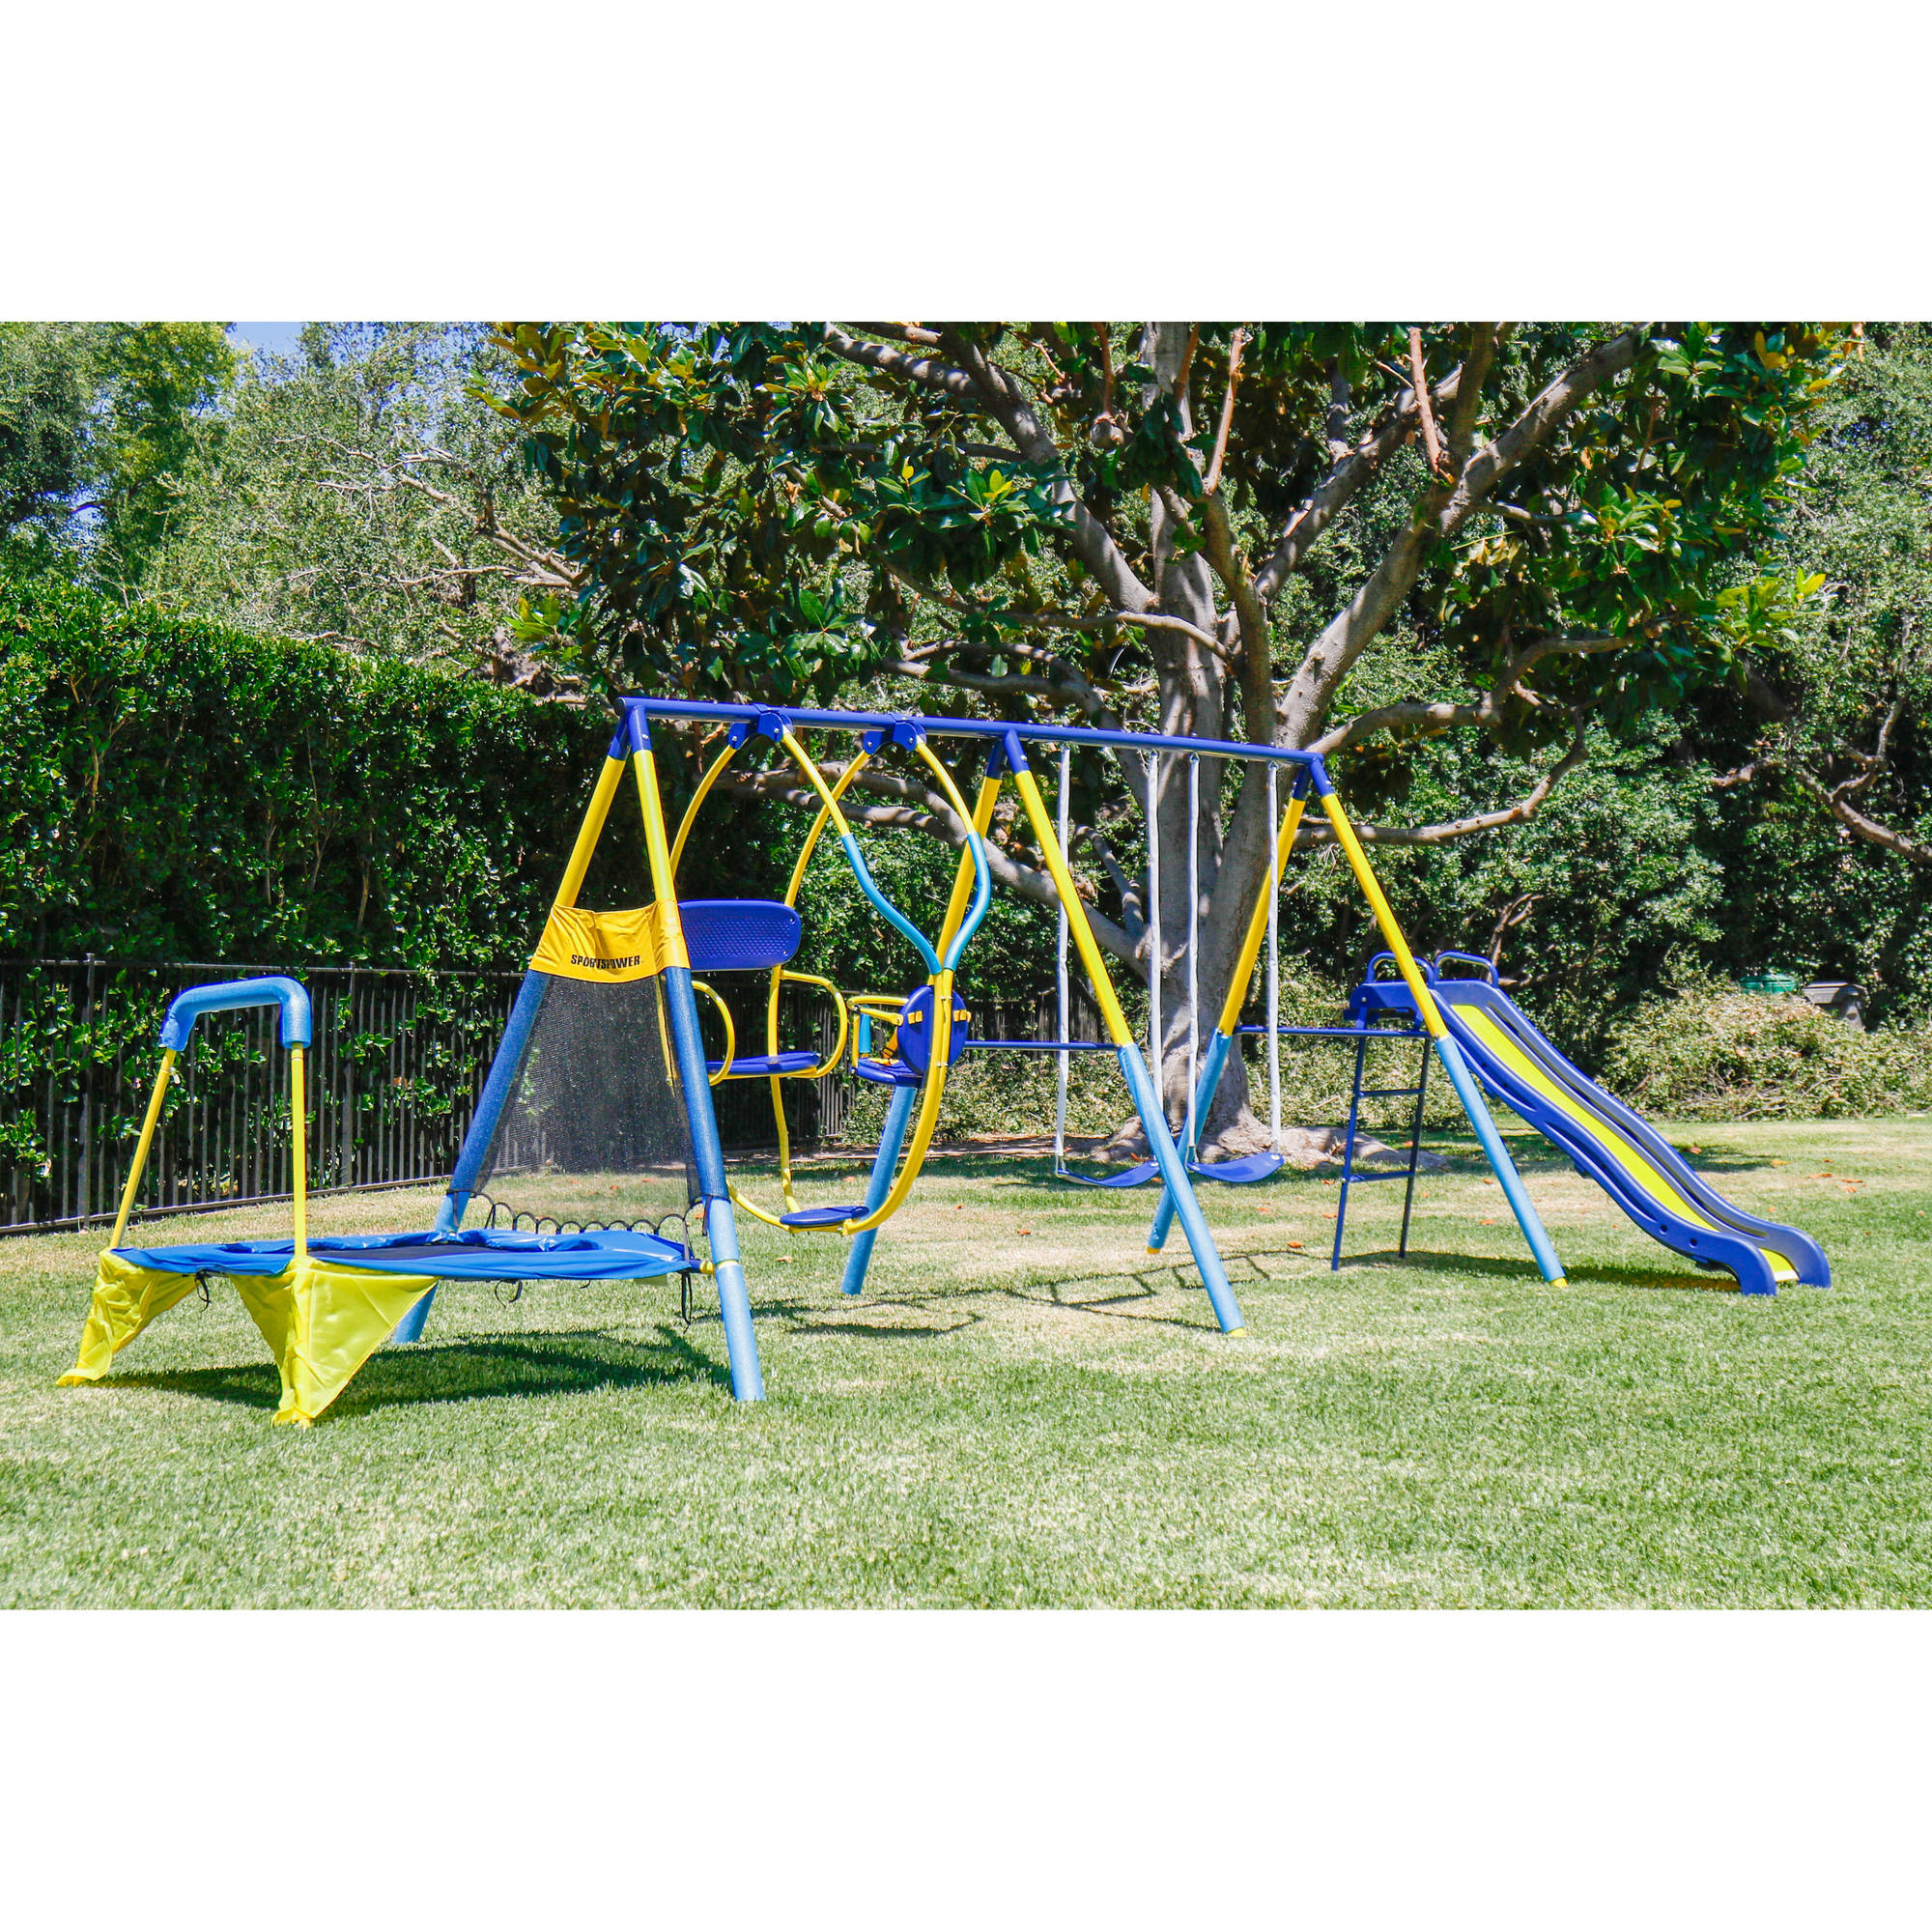 Playground Set Frame FUN Play Center Swing Slide Outdoor Backyard Kids  Toddler